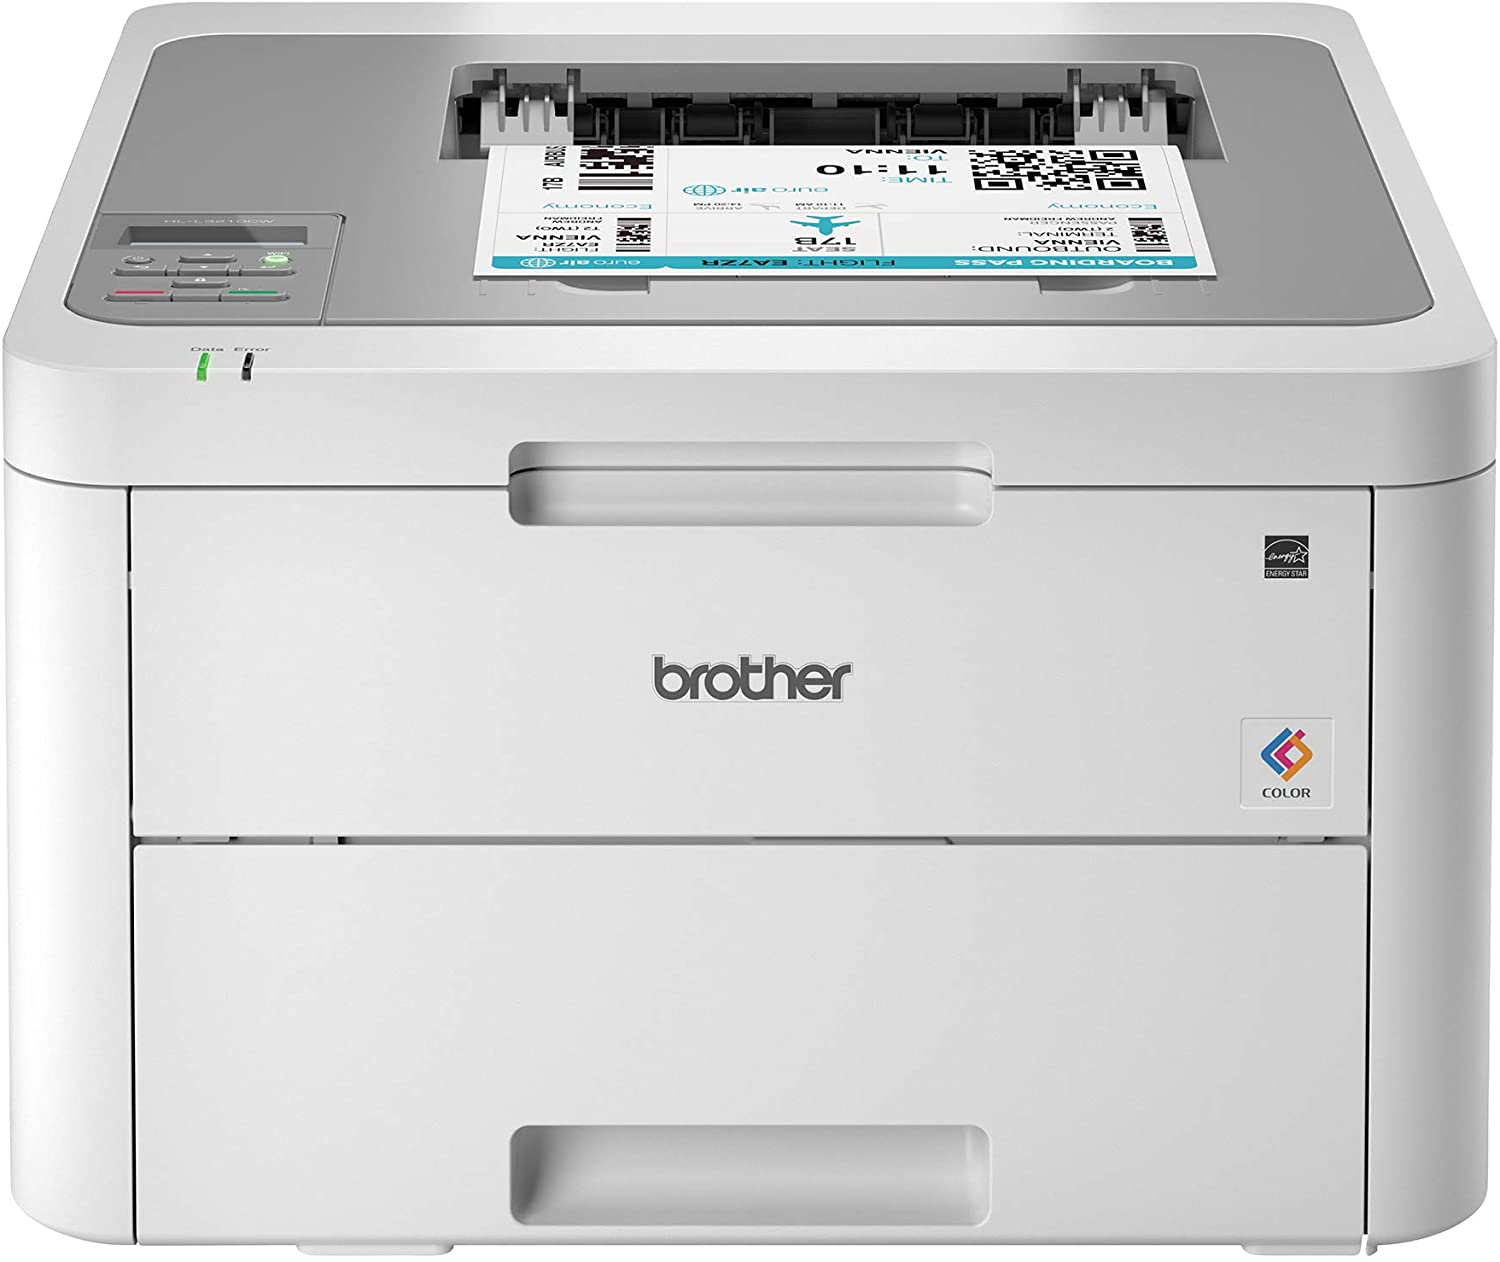 Brother HL-L3210CW Compact Digital Color Printer reviews uk